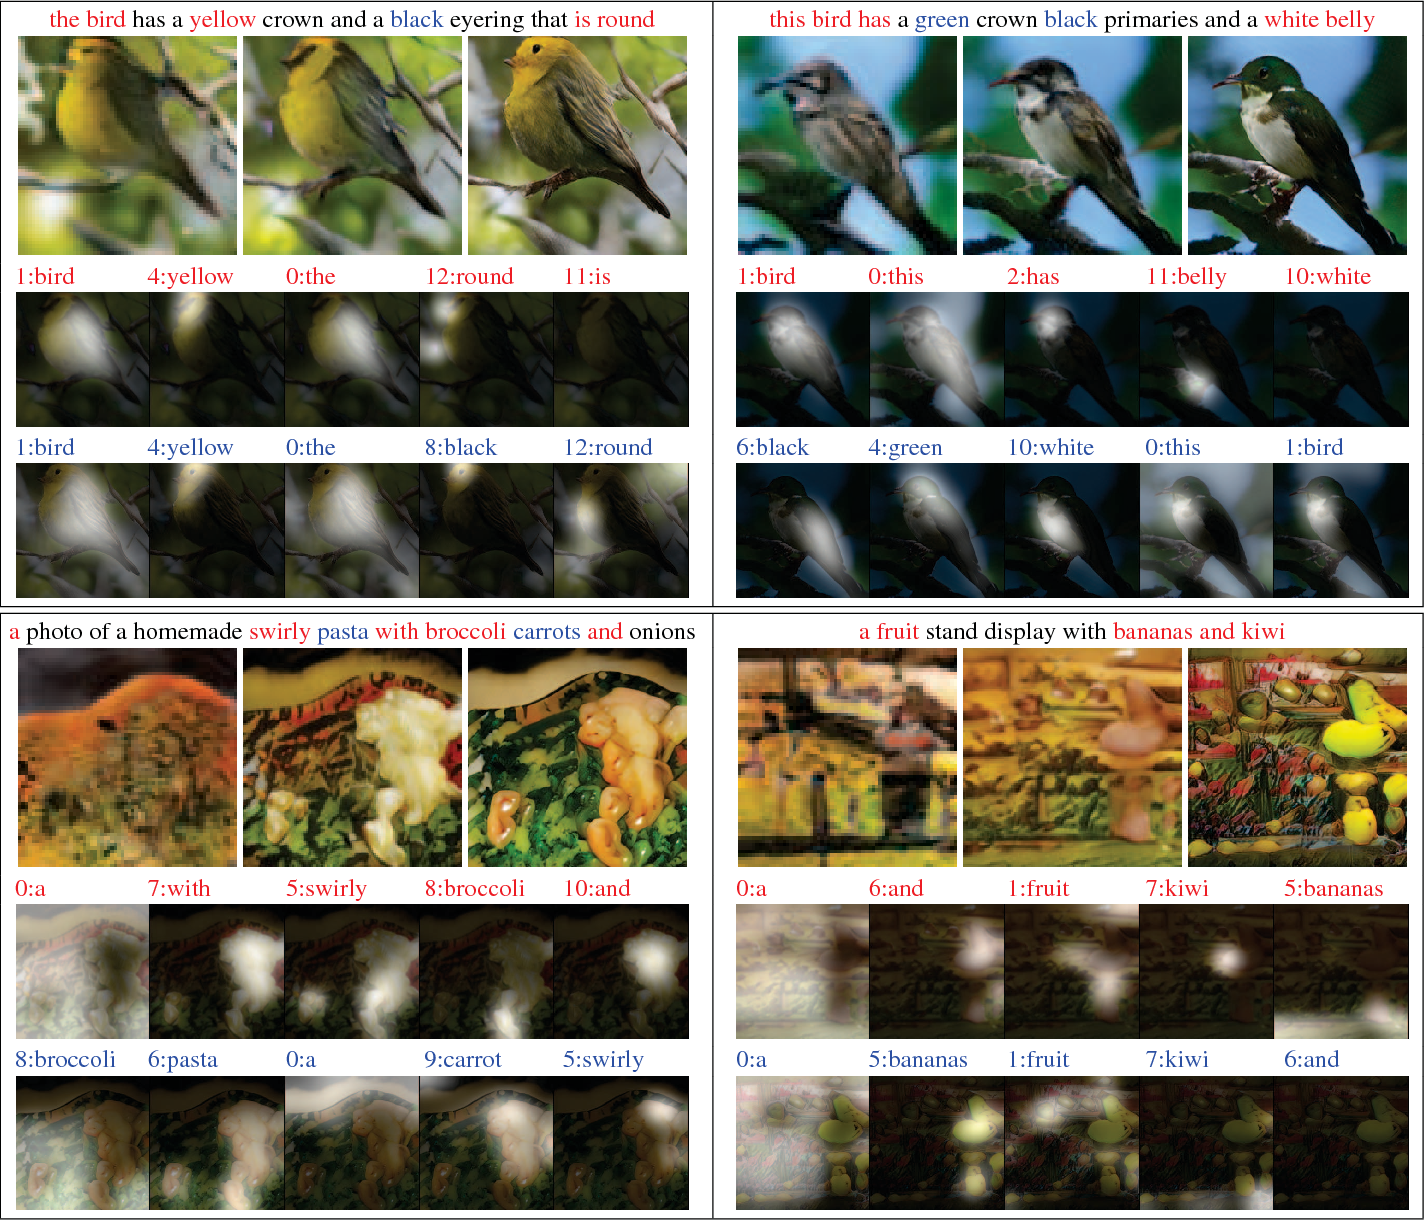 AttnGAN (Attentional Generative Adversarial Networks)